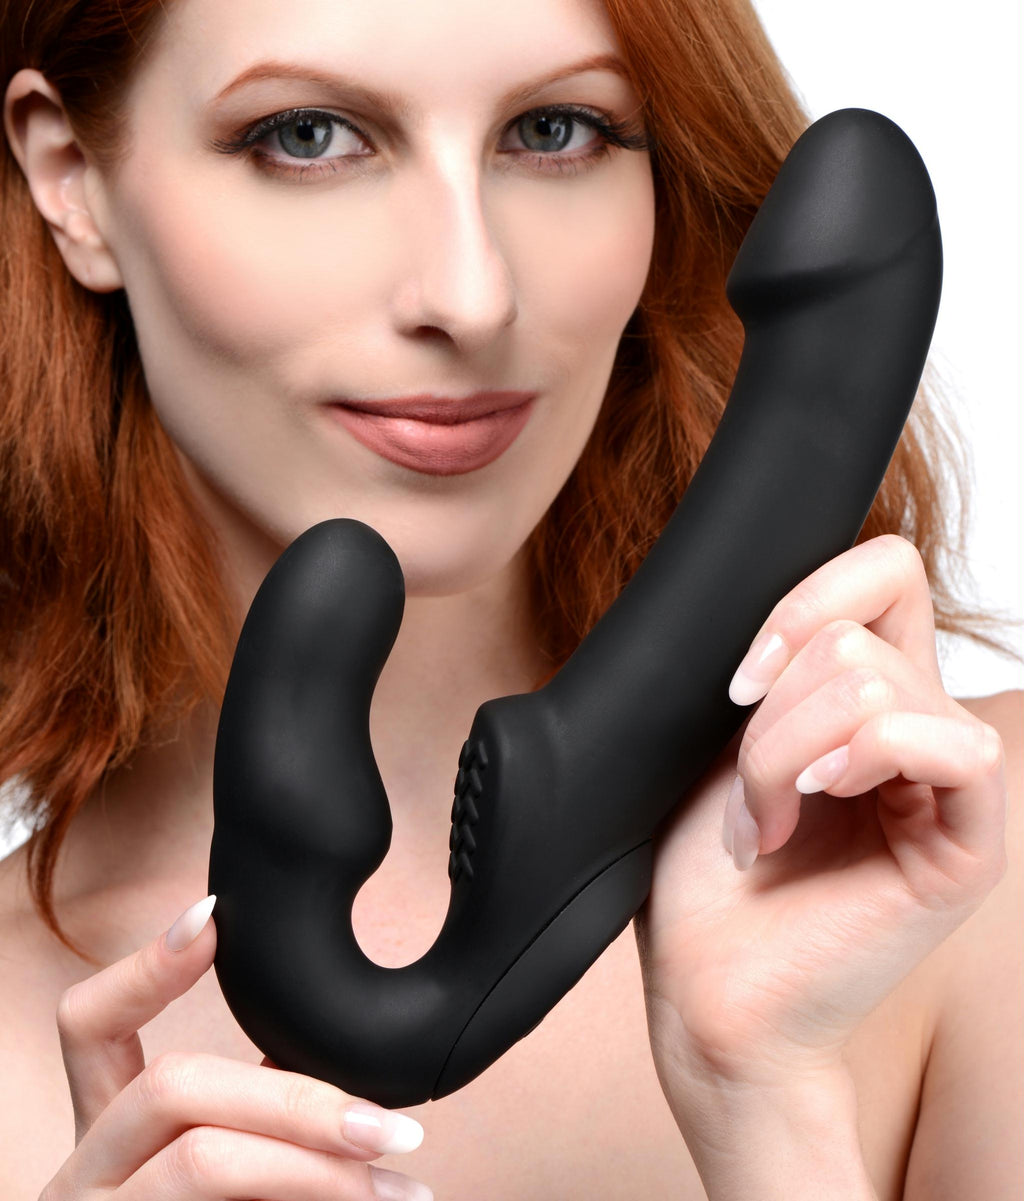 Evoke Rechargeable Vibrating Silicone Strapless Strap On